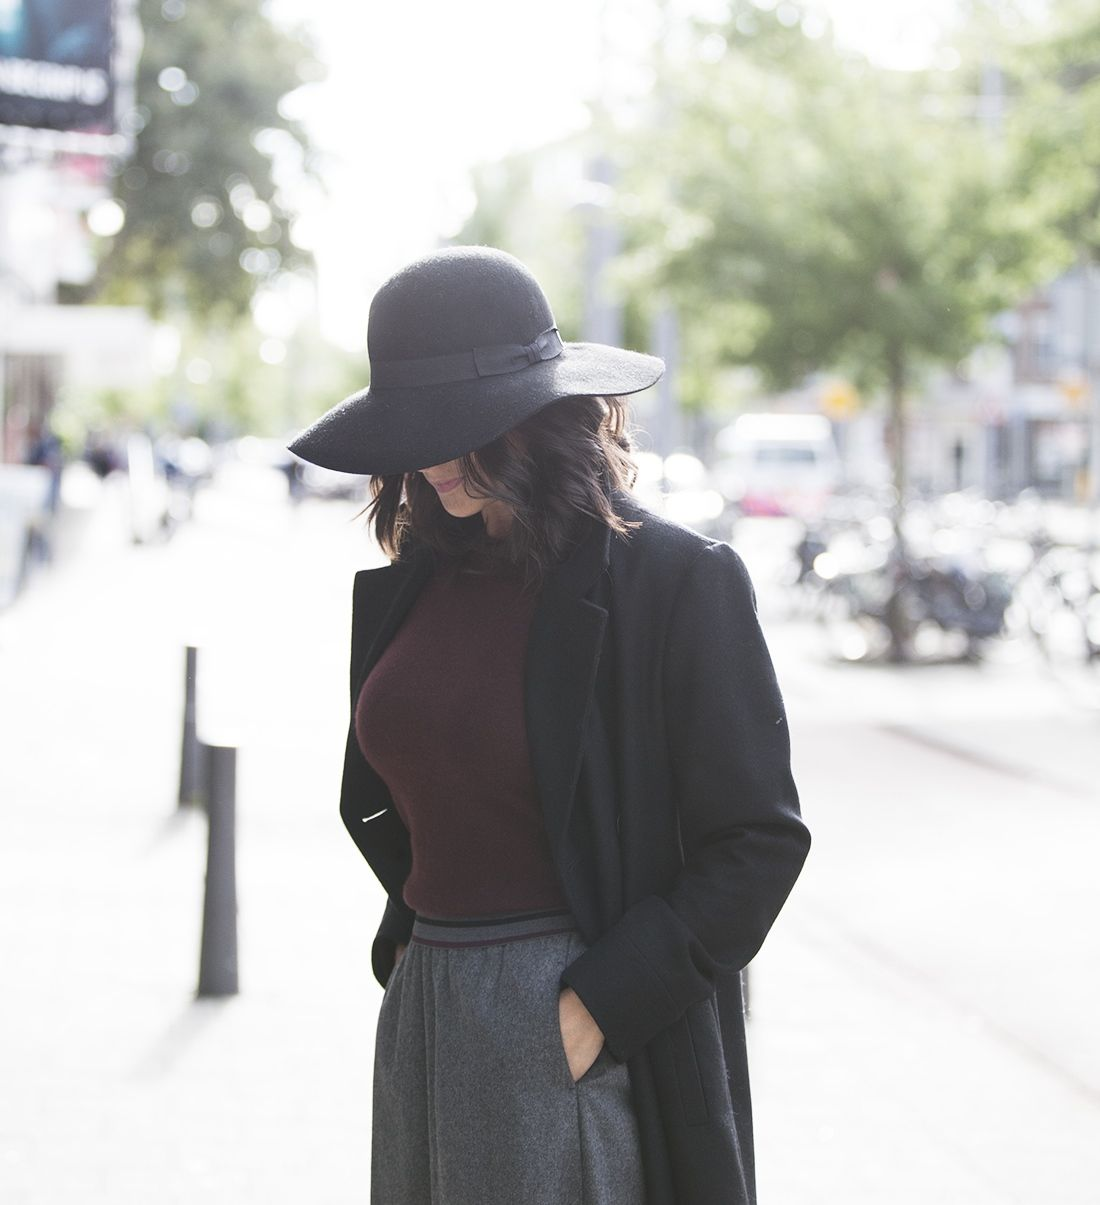 Fedora hat streetstyle fall 2016 Blogforshops look for Gerz Rotterdam